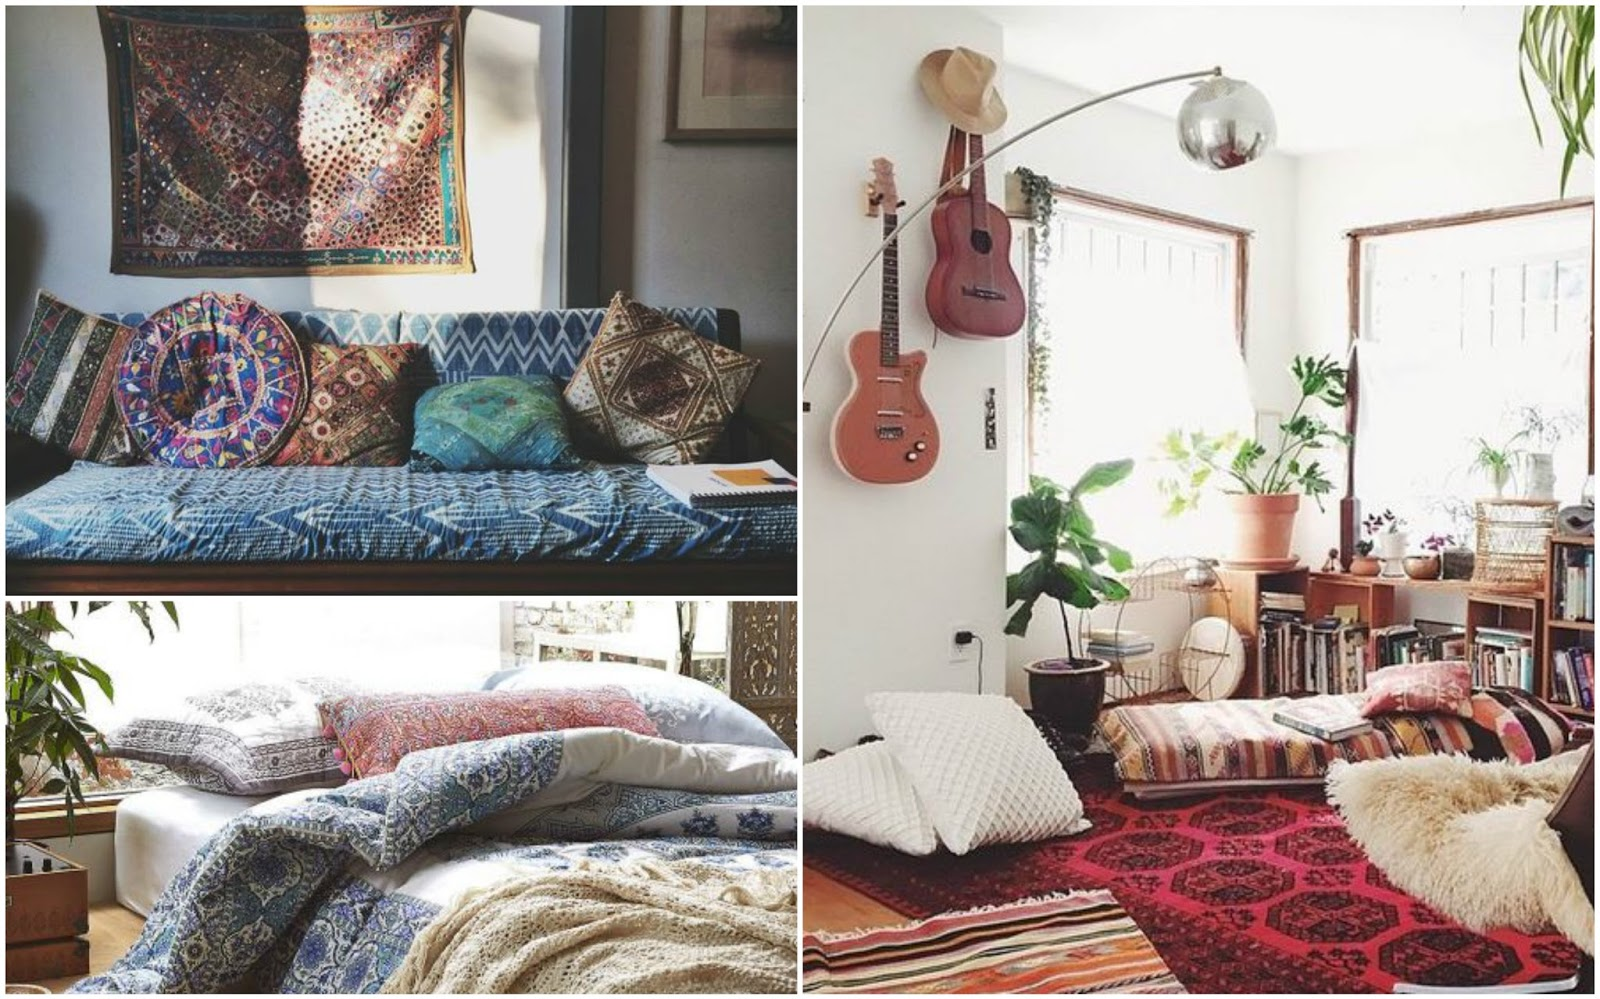 Rental apartment boho: the home ofxochi balfour. boho chic living ...